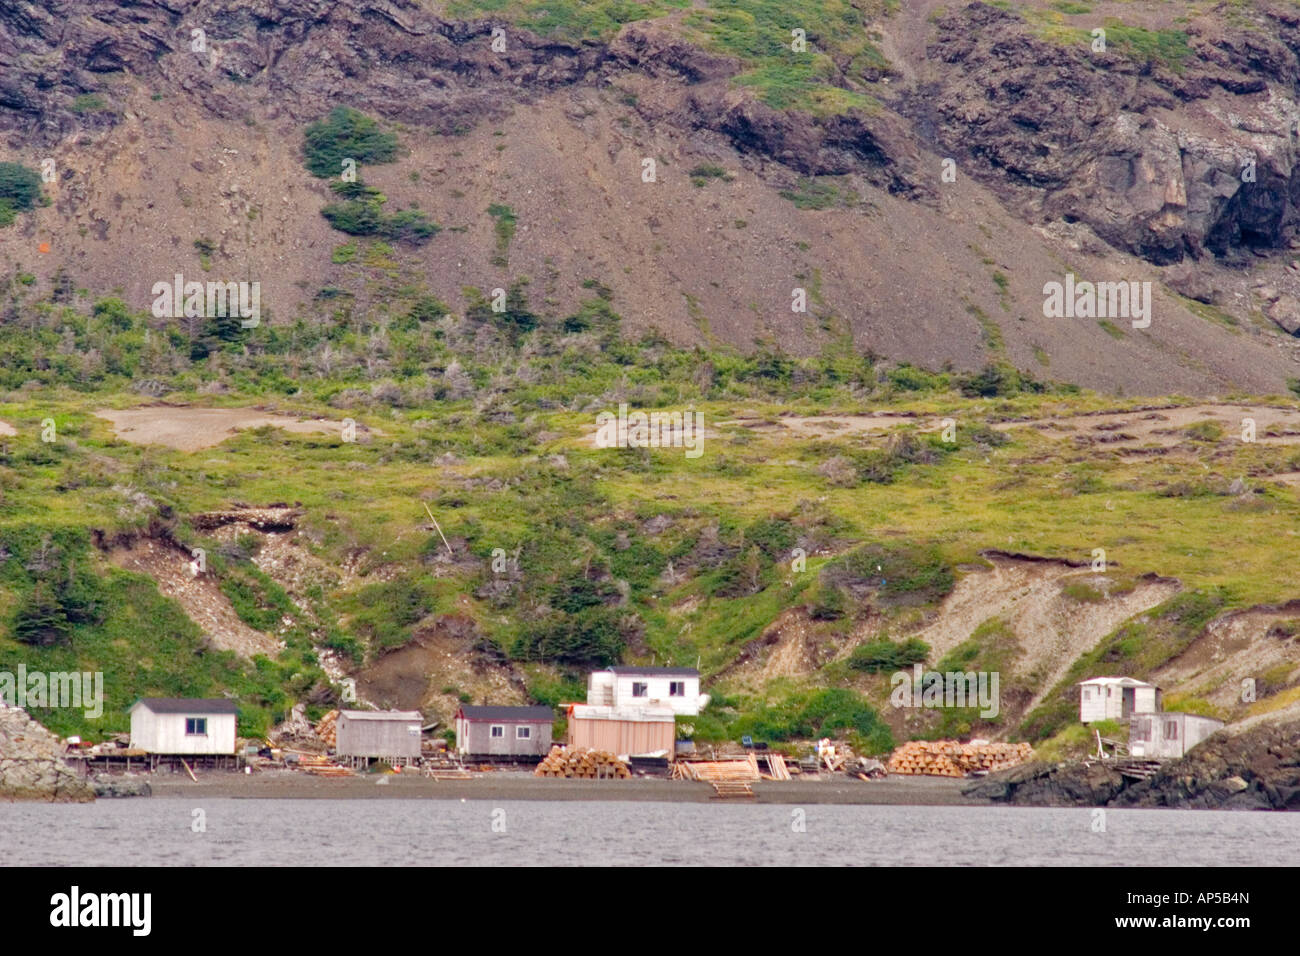 Outport Fishing Village Stock Photos & Outport Fishing Village Stock Images - Alamy